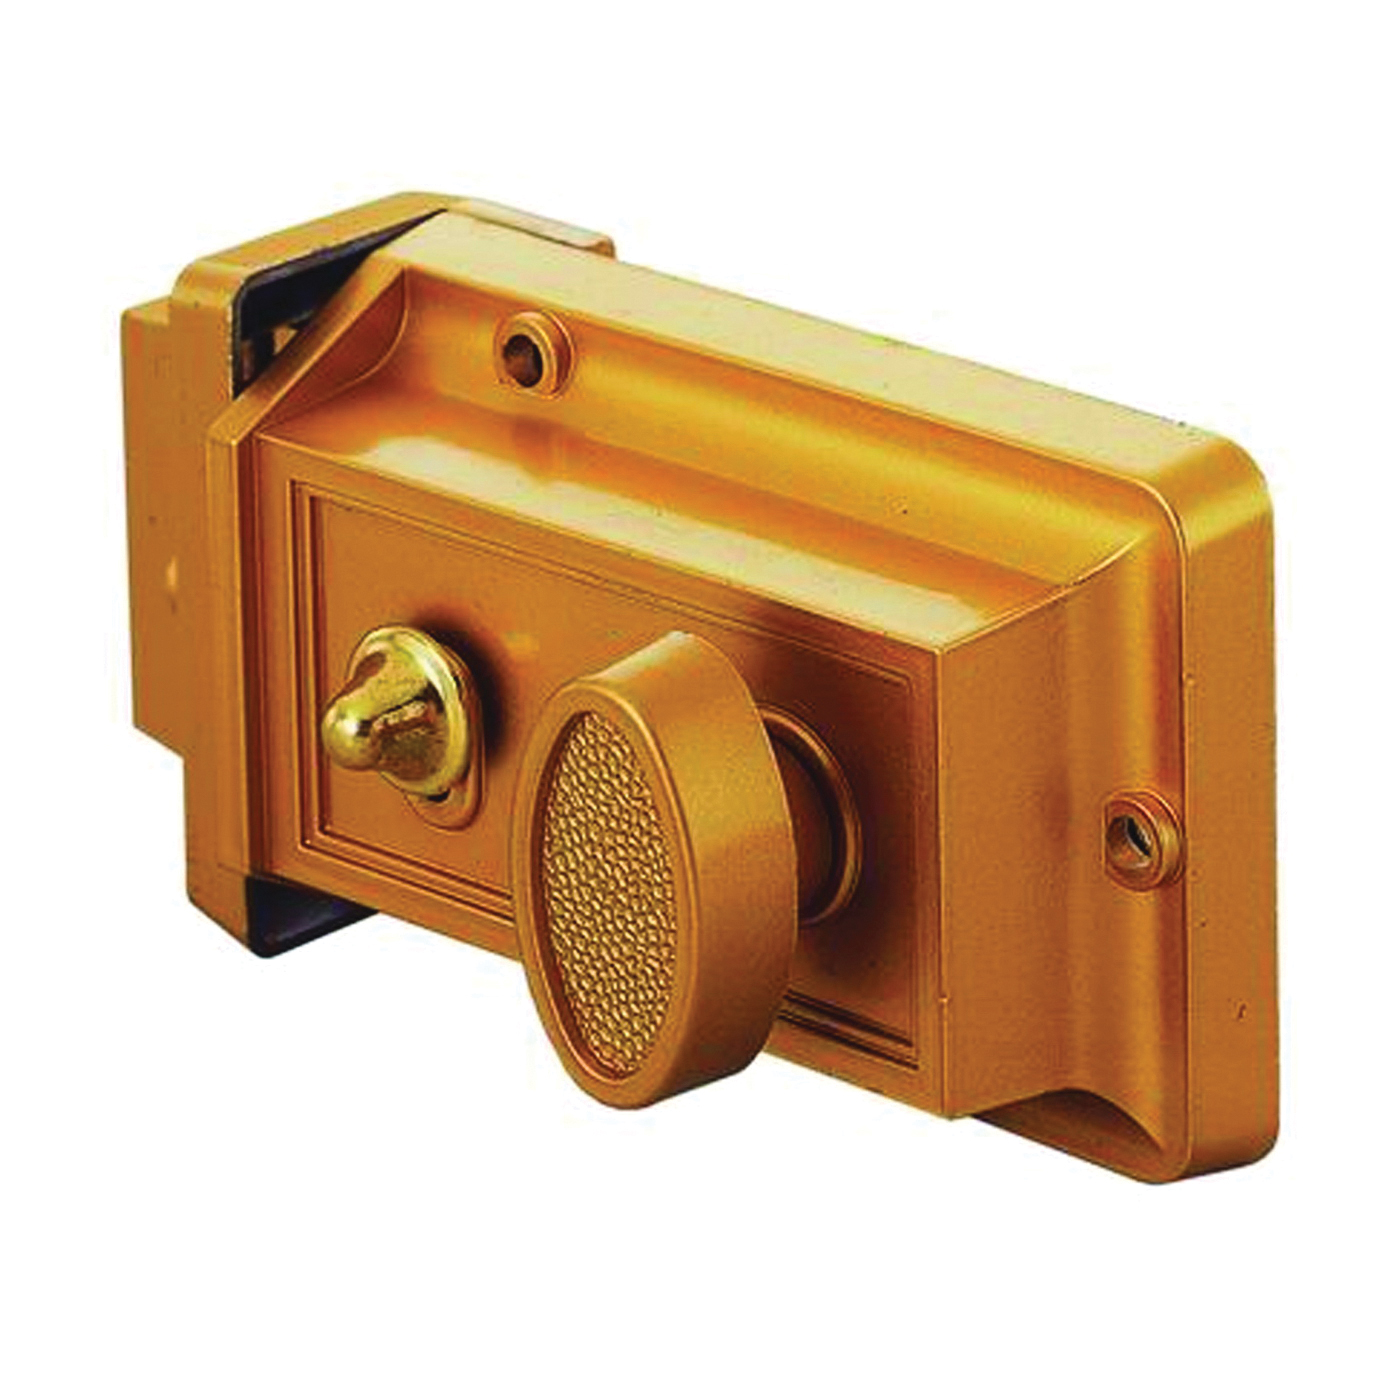 Picture of ProSource 6296453-3L Lockset, Brass, Gold